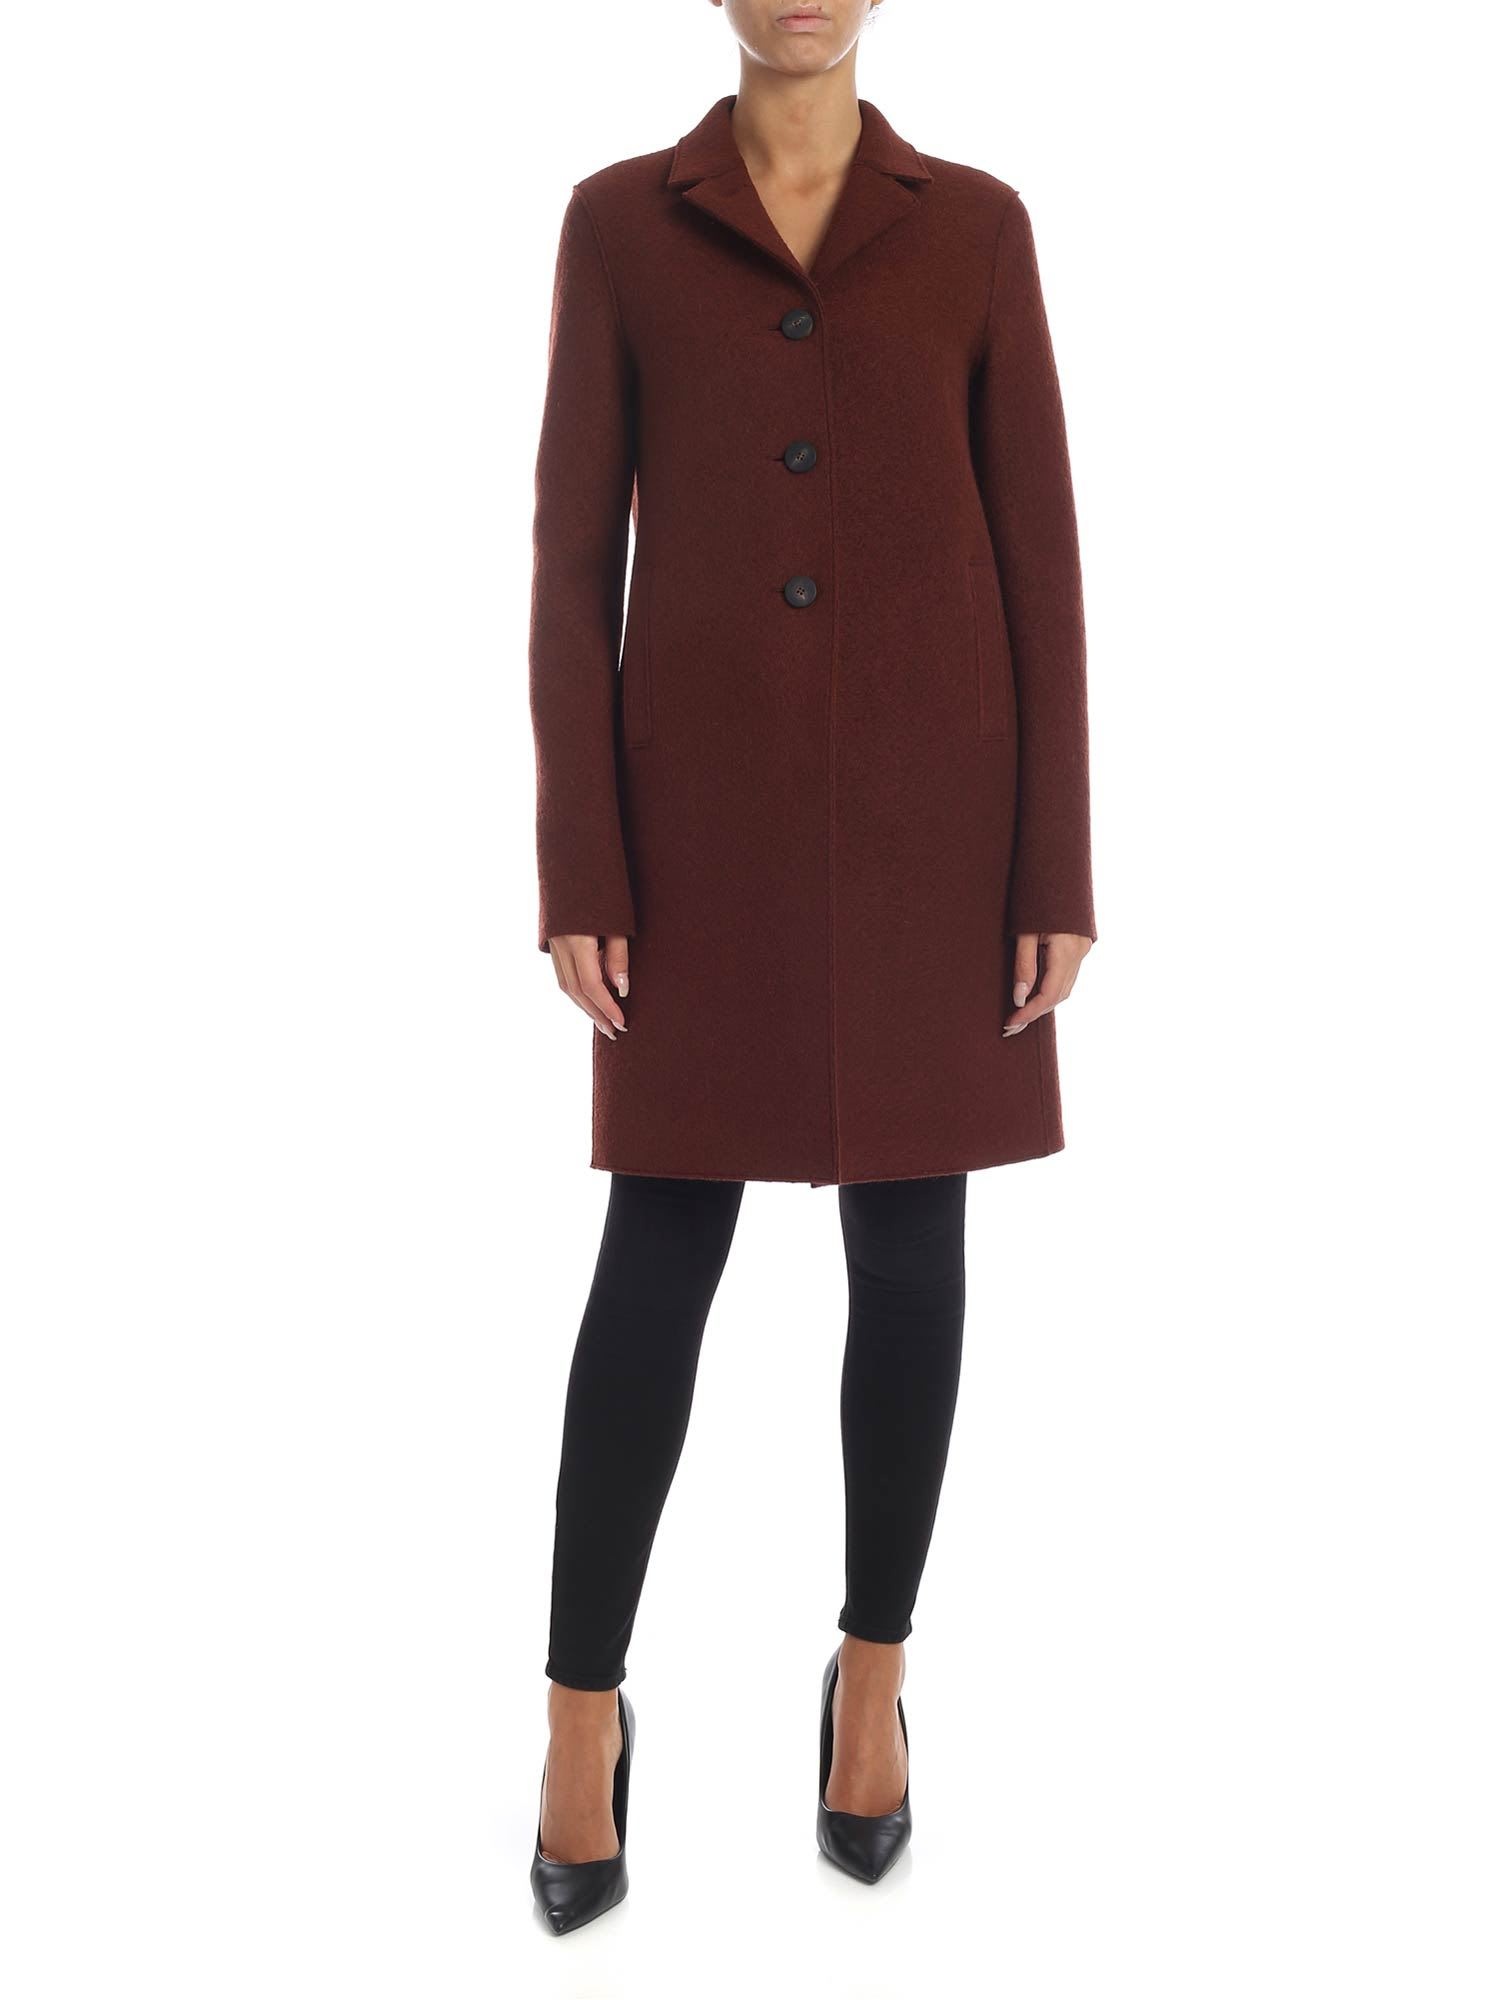 Harris Wharf London – Virgin Wool Cloth Coat